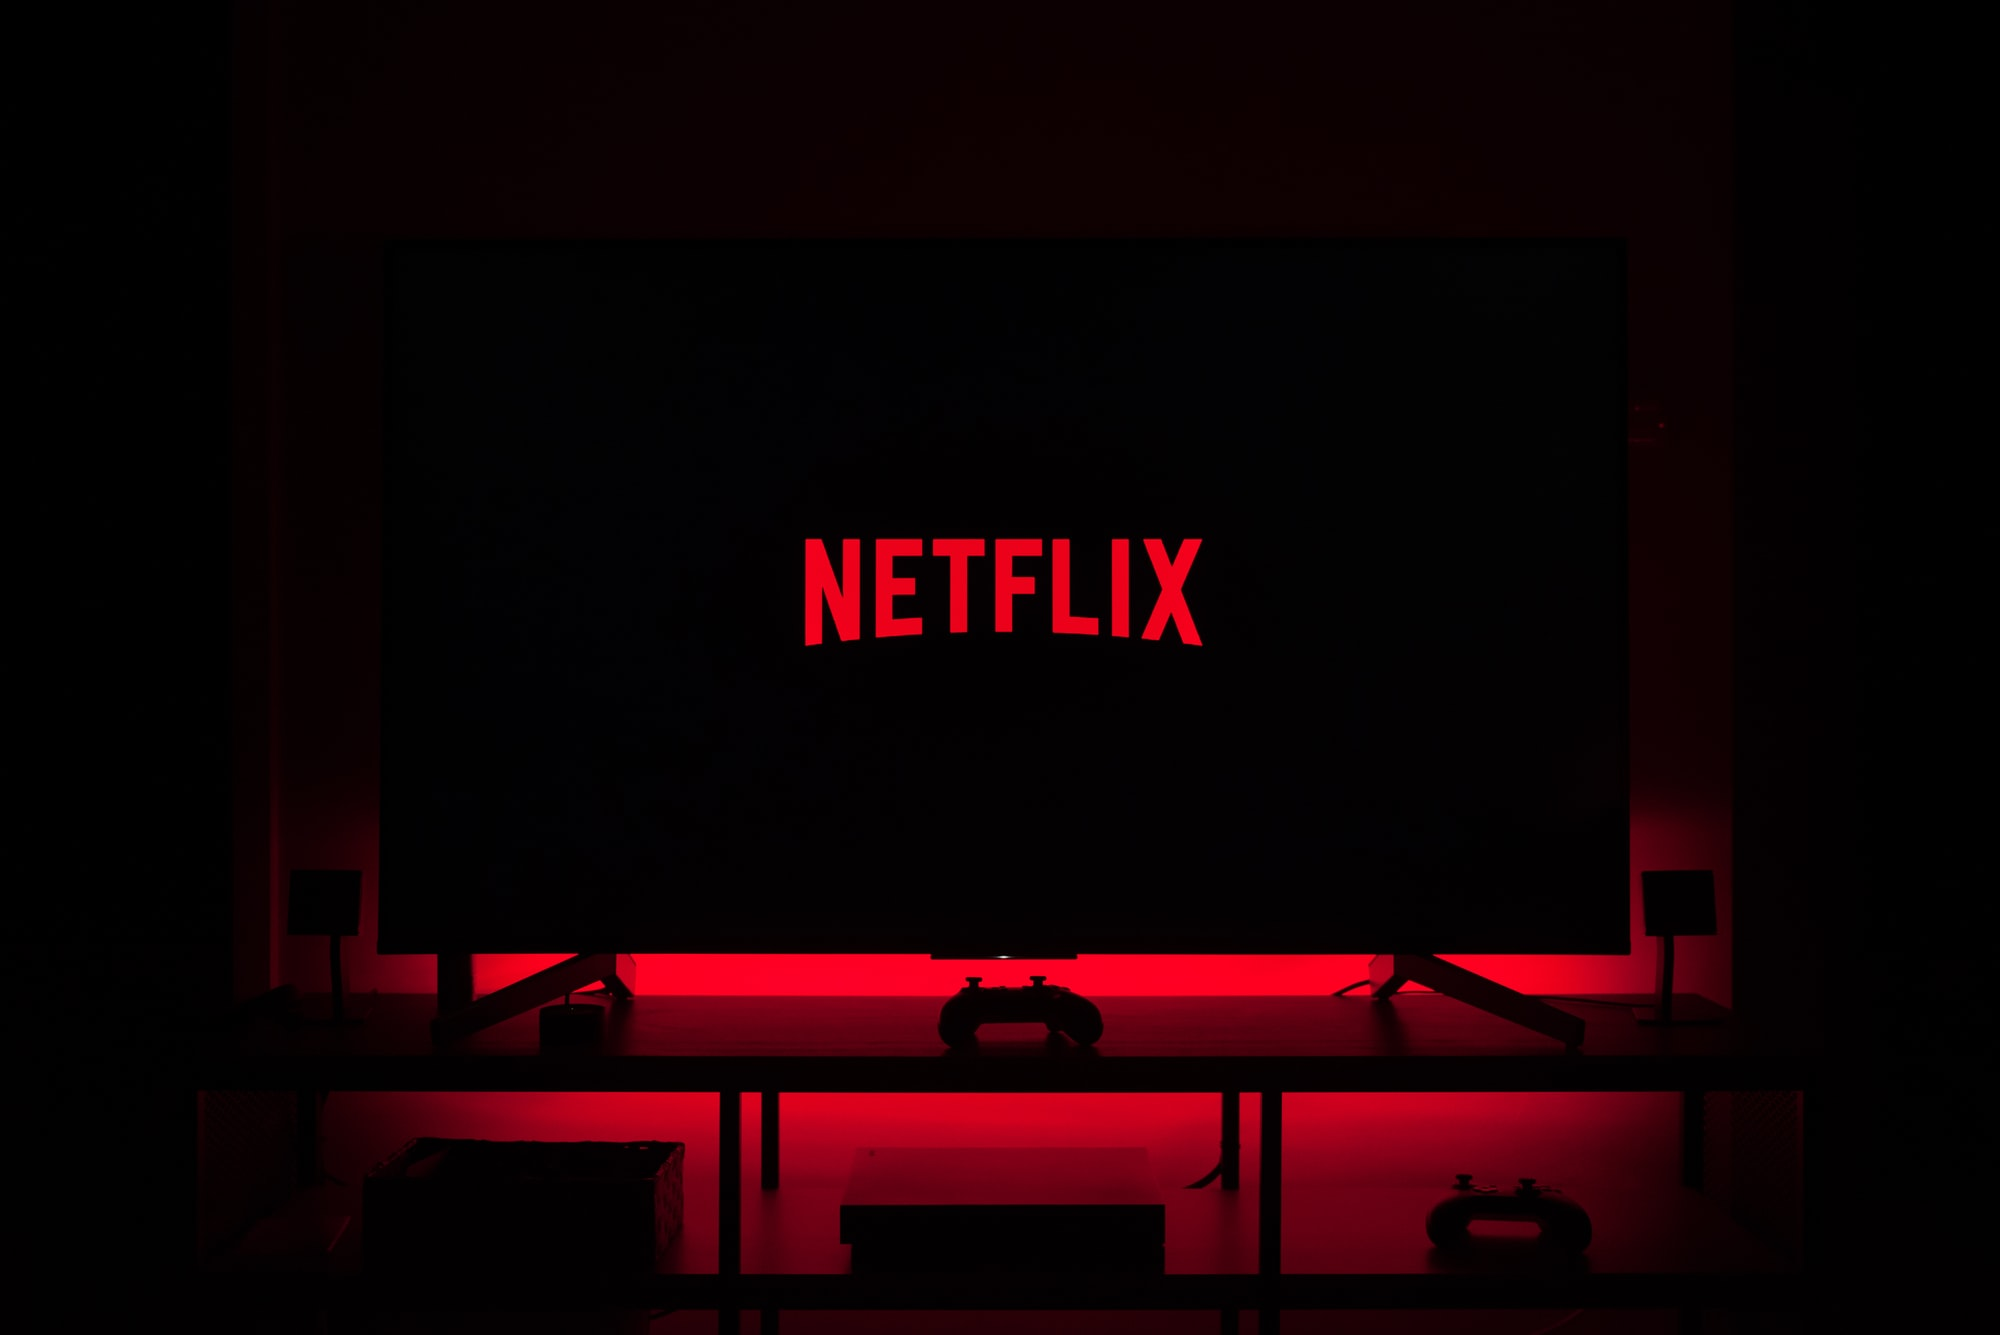 How will Netflix's game streaming shift the way games are made?